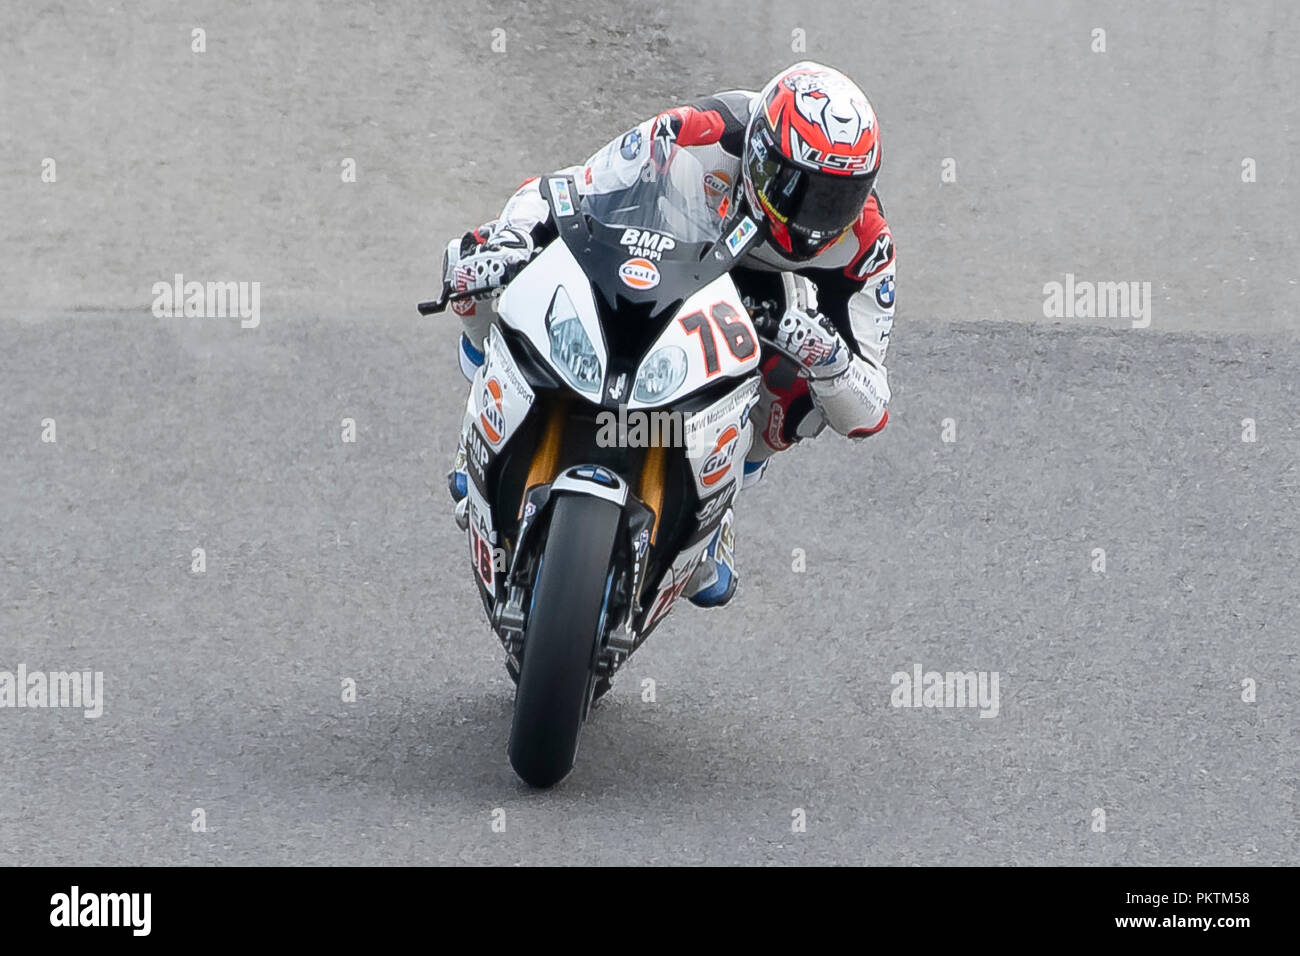 Algarve, Portugal. 15th Sep 2018. 76 Loris Baz Team GULF ALTHEA BMW RACING TEAM   during the World Superbikes race at Autodromo Internacional do Algarve, 14-16 September 2018 in Algarve, Portugal. Credit: Fabio Averna/Alamy Live News Stock Photo